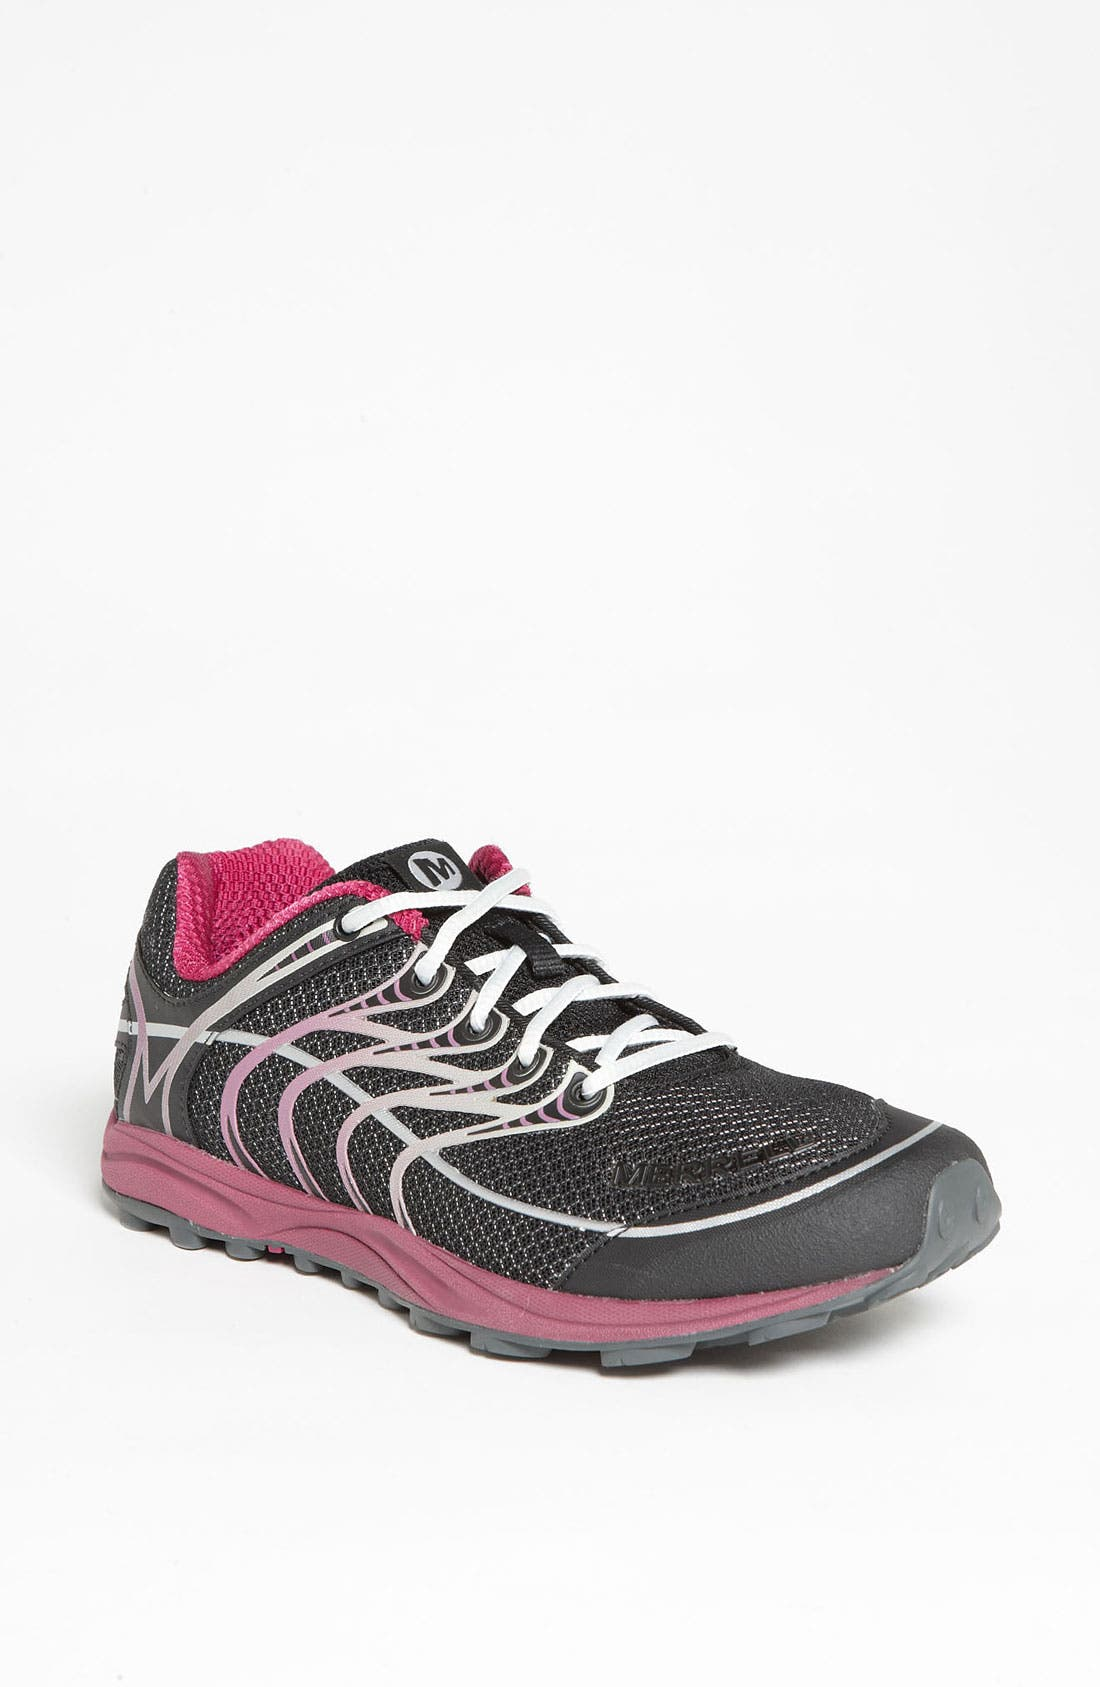 Main Image - Merrell 'Mix Master Road Glide' Running Shoe (Women)